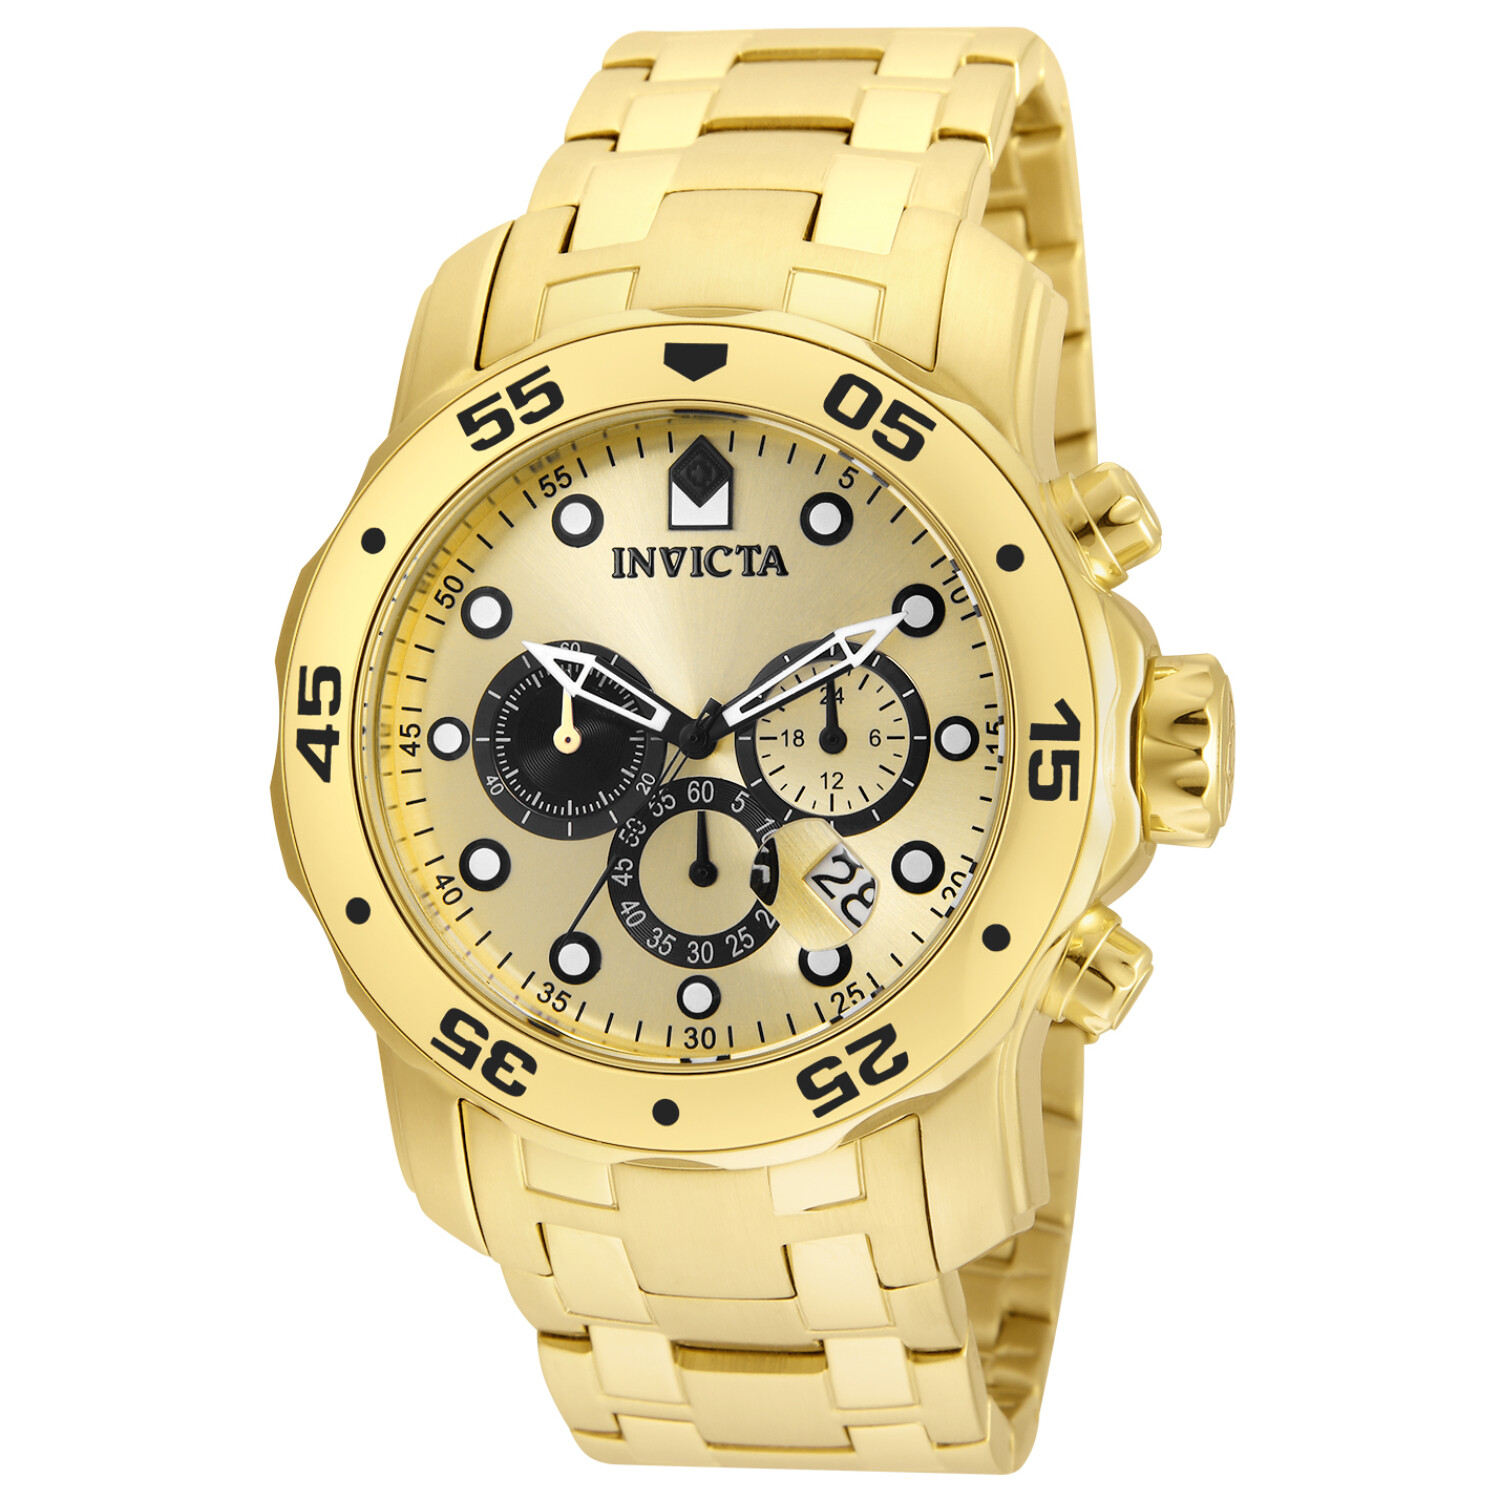 Invicta Men's Pro Diver INV-24850 Gold Stainless-Steel Quartz Dress Watch